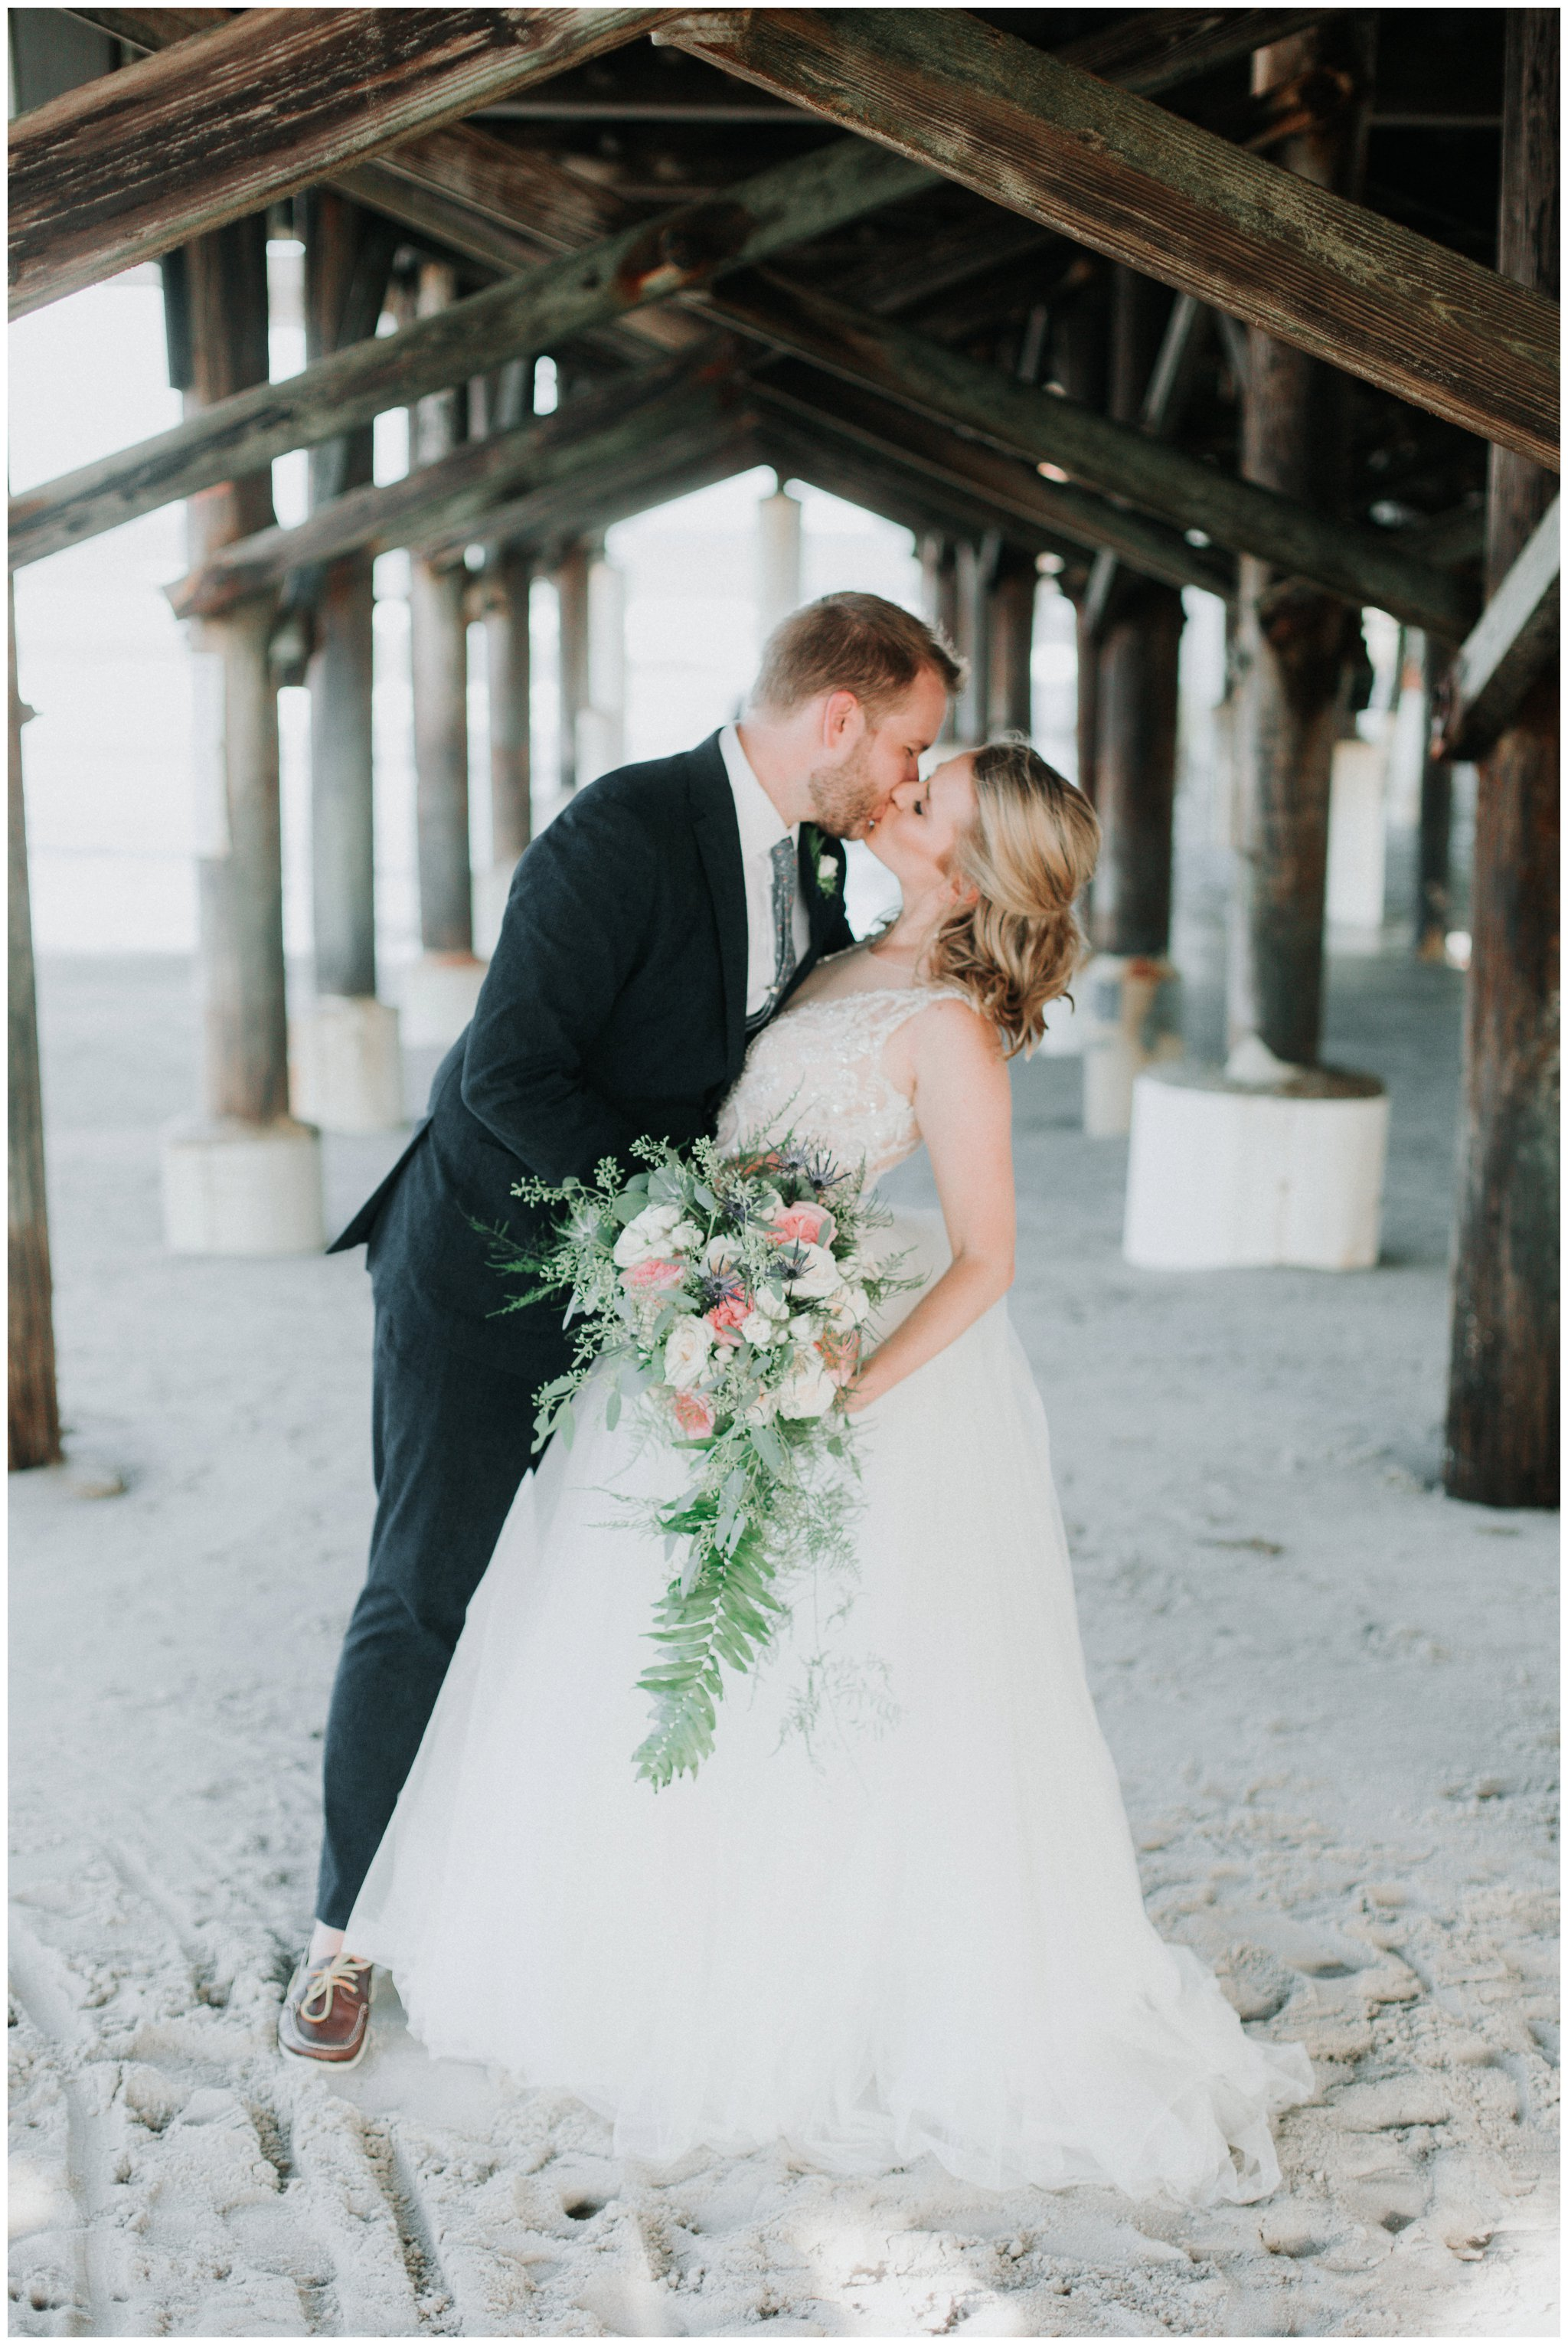 kaley and kevin-coco beach pier wedding-kimberly smith photography_0056.jpg